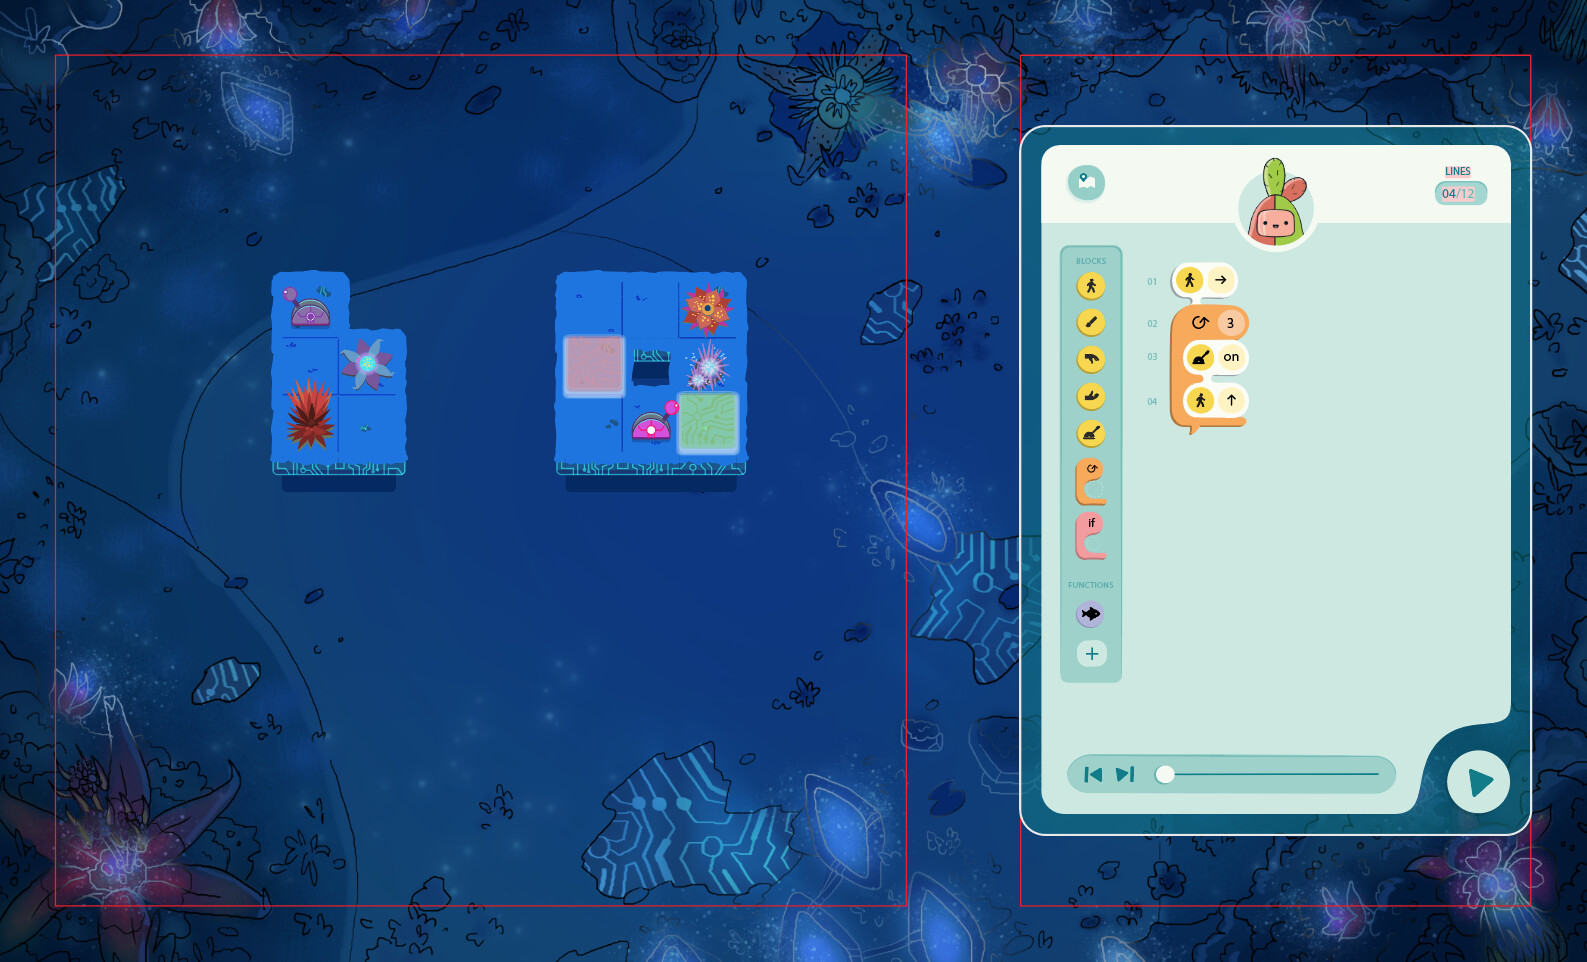 Puzzle Background with Tiles and Object Assets (Right - UI credit to game designer)